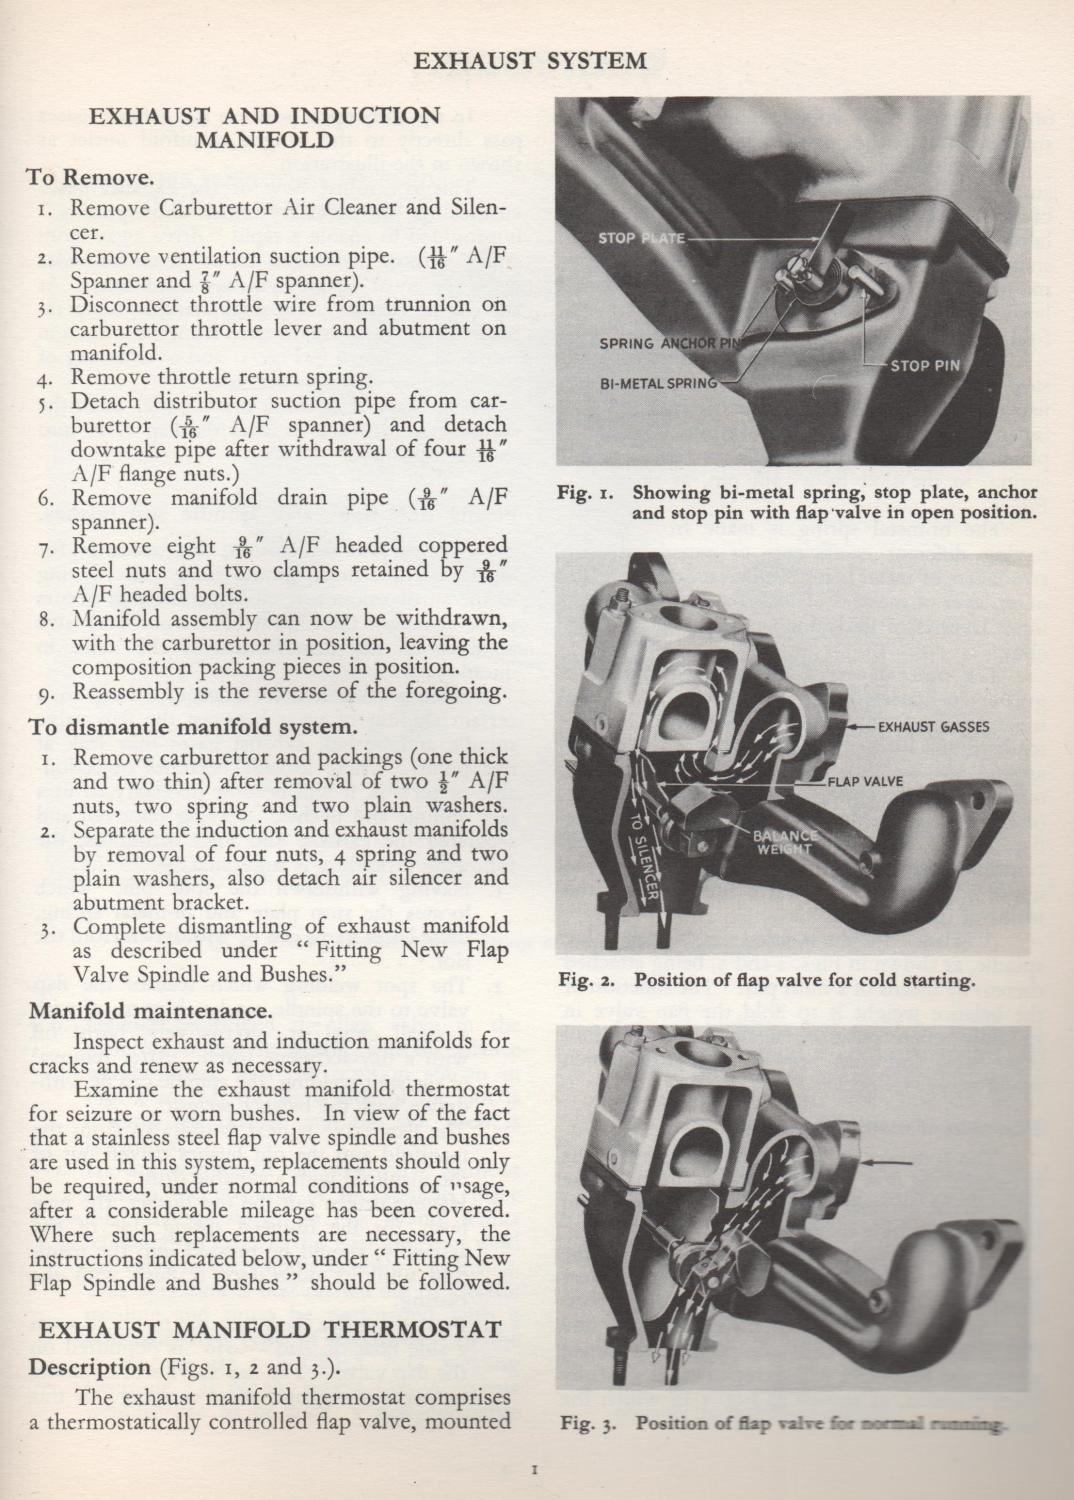 Standard Vanguard Service Instruction Manual